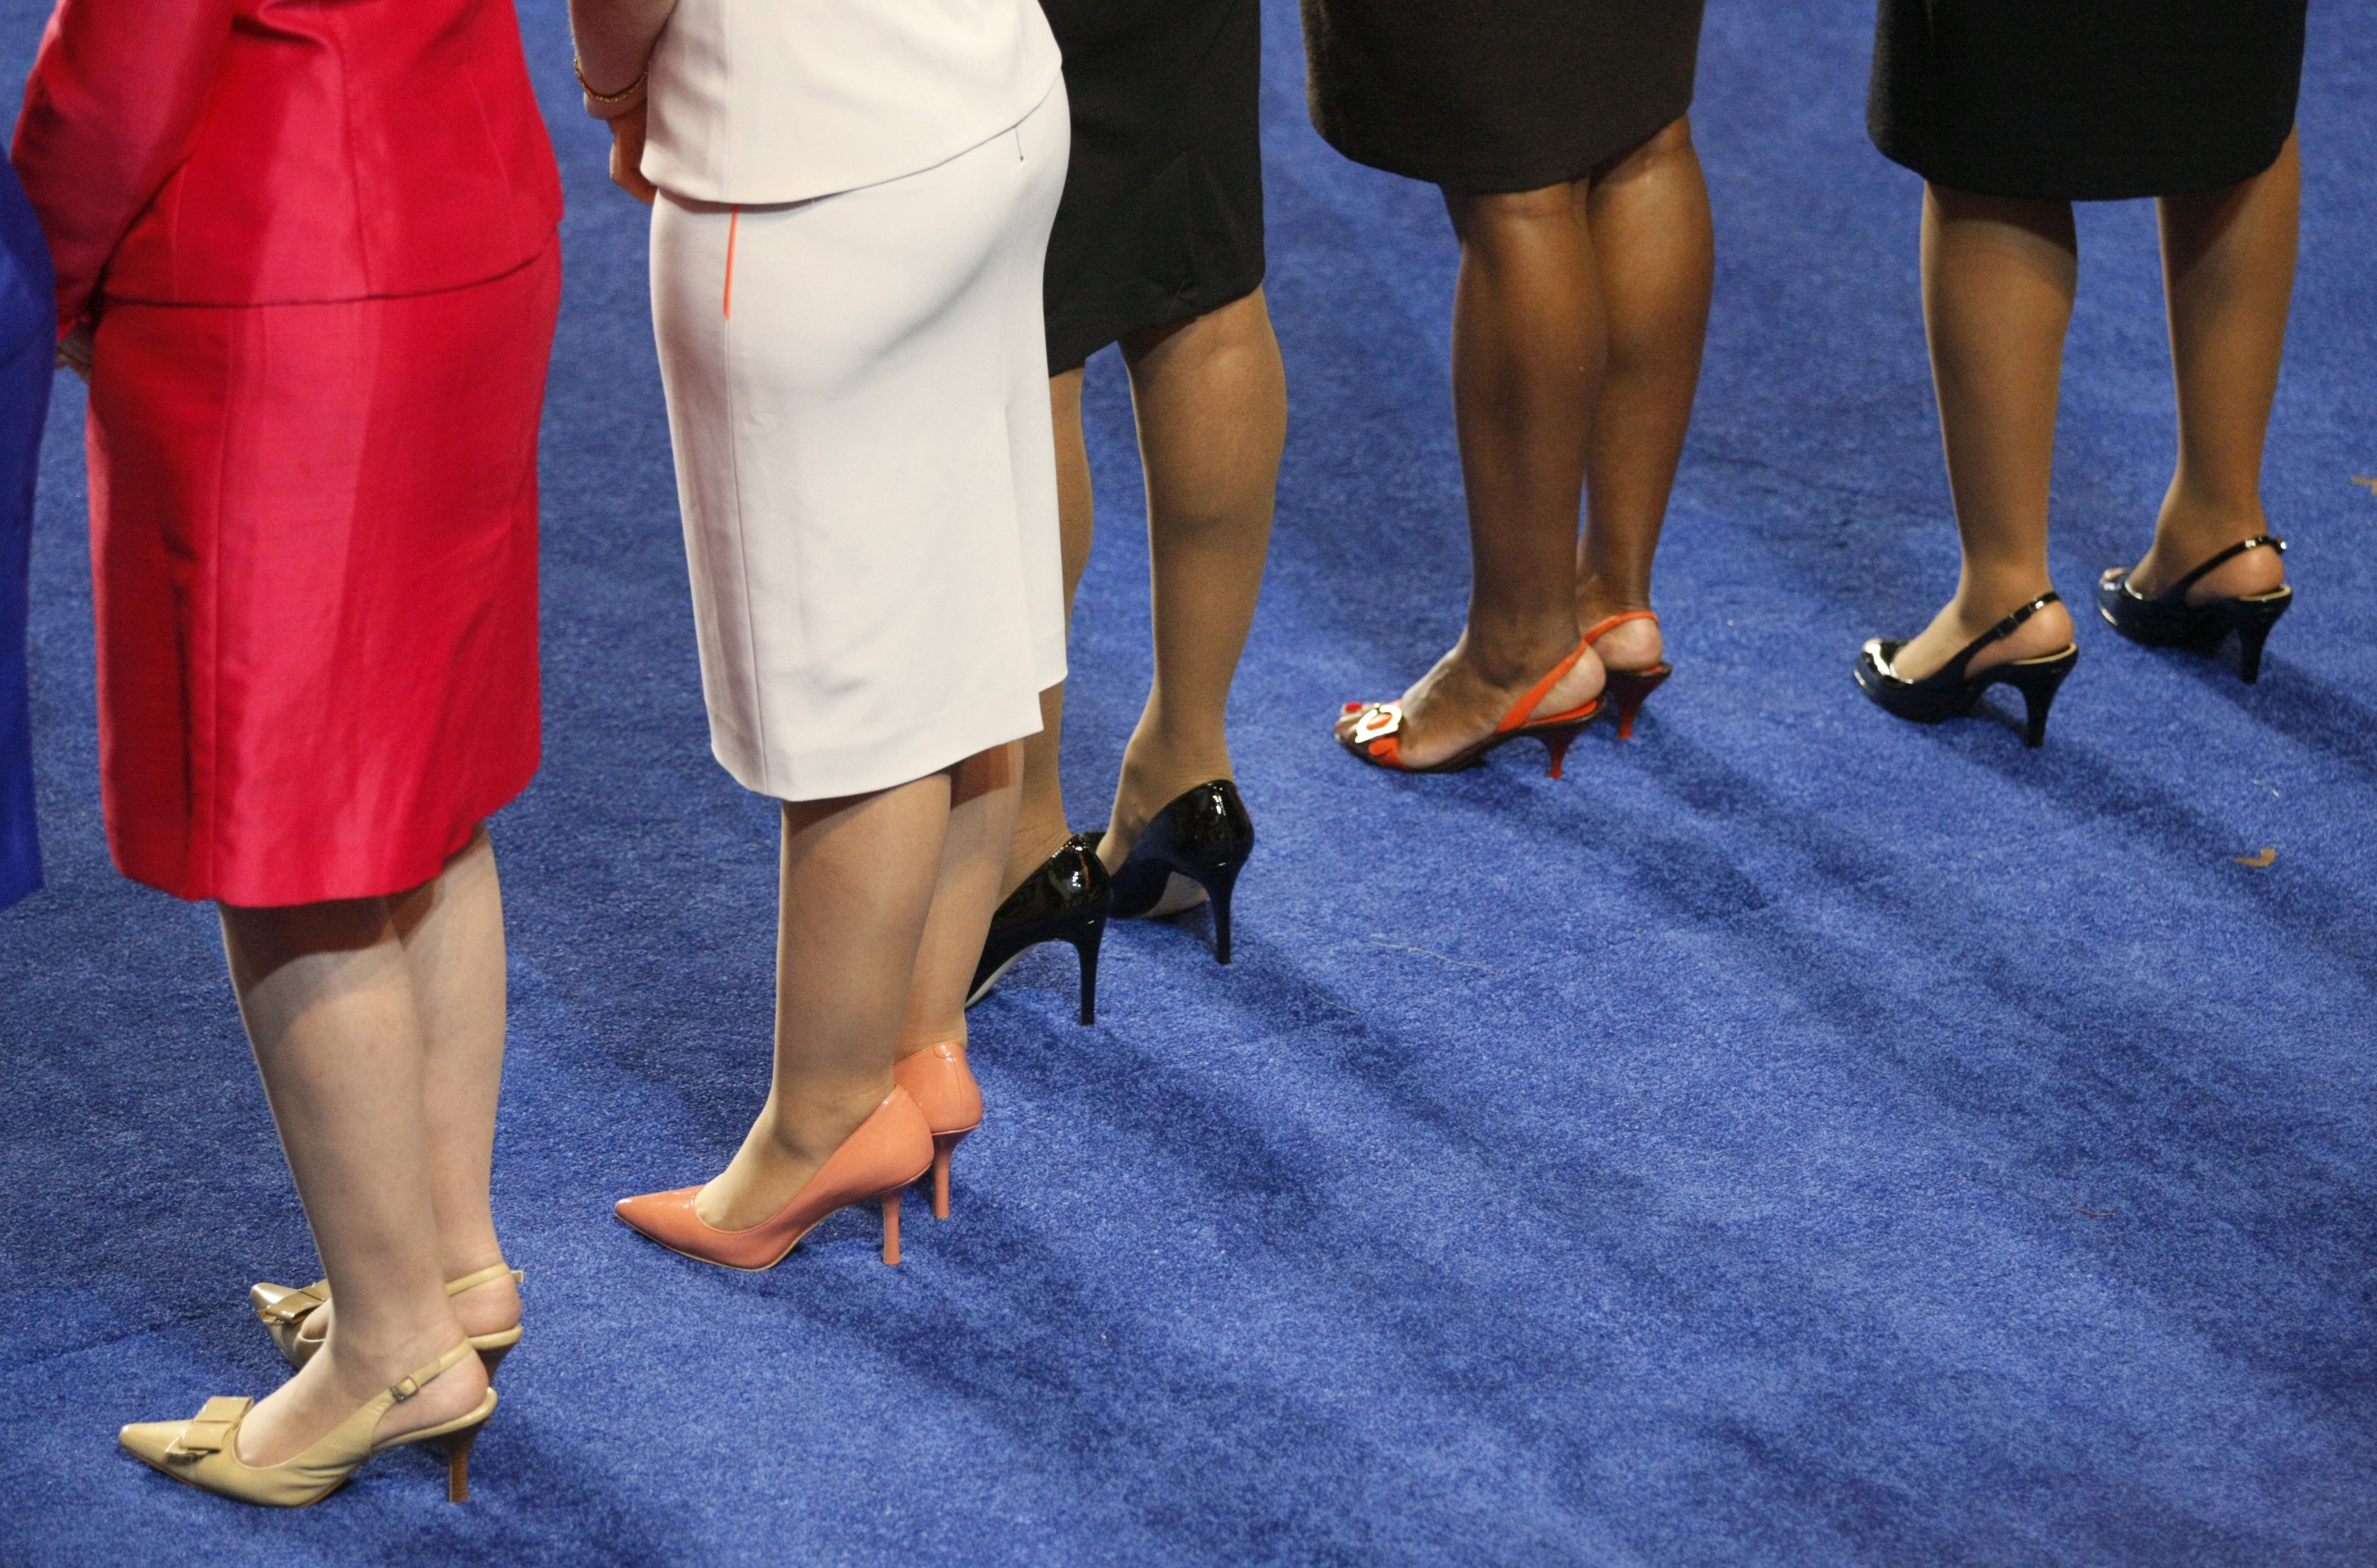 The legs of five women members of the U.S. House of Representatives are seen                    during the opening session of the 2012 Democratic National Convention in Charlotte, North Carolina in 2012.